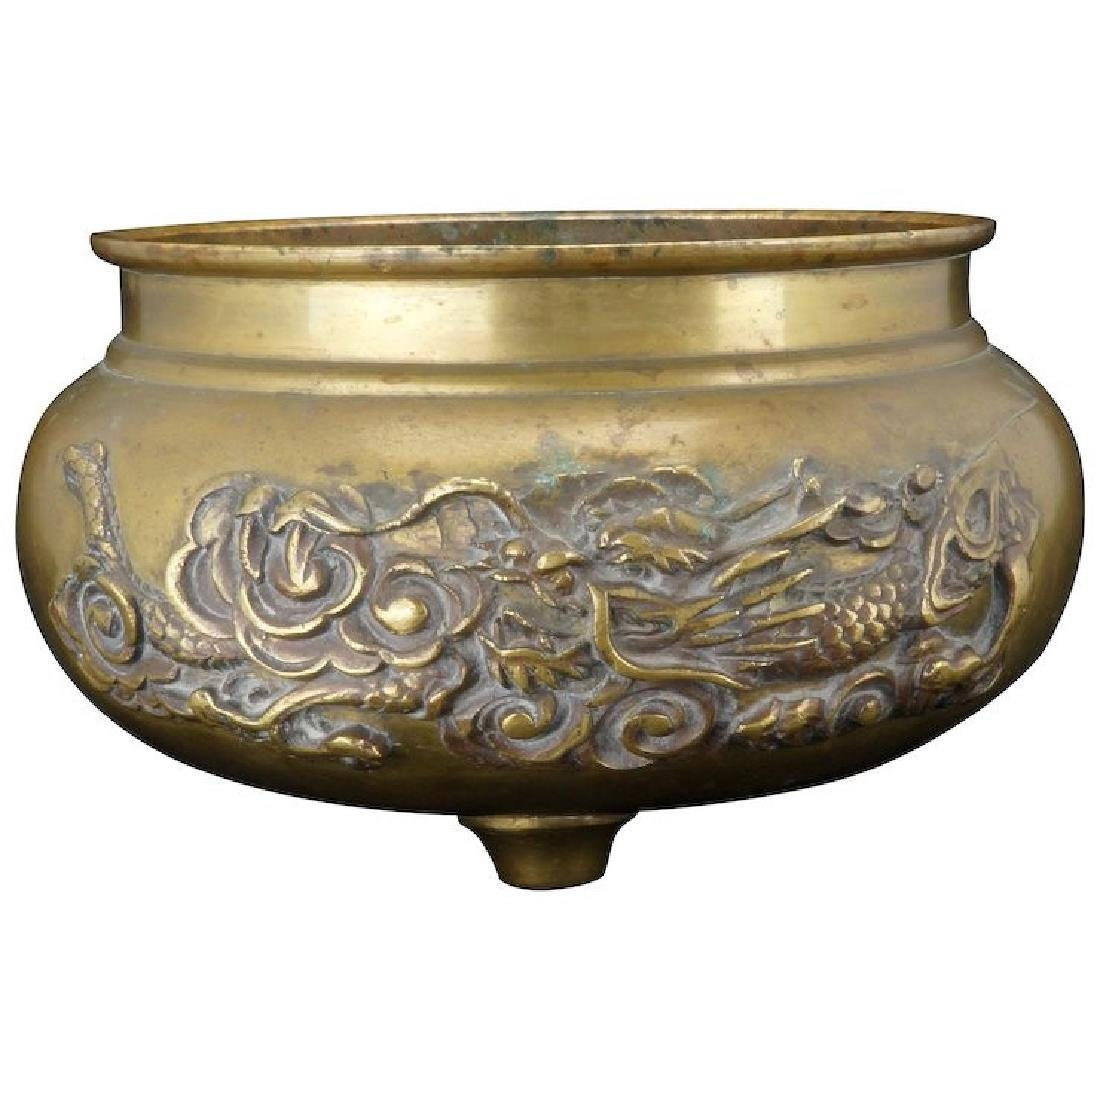 Japanese round brass censer with tripod legs and dragon